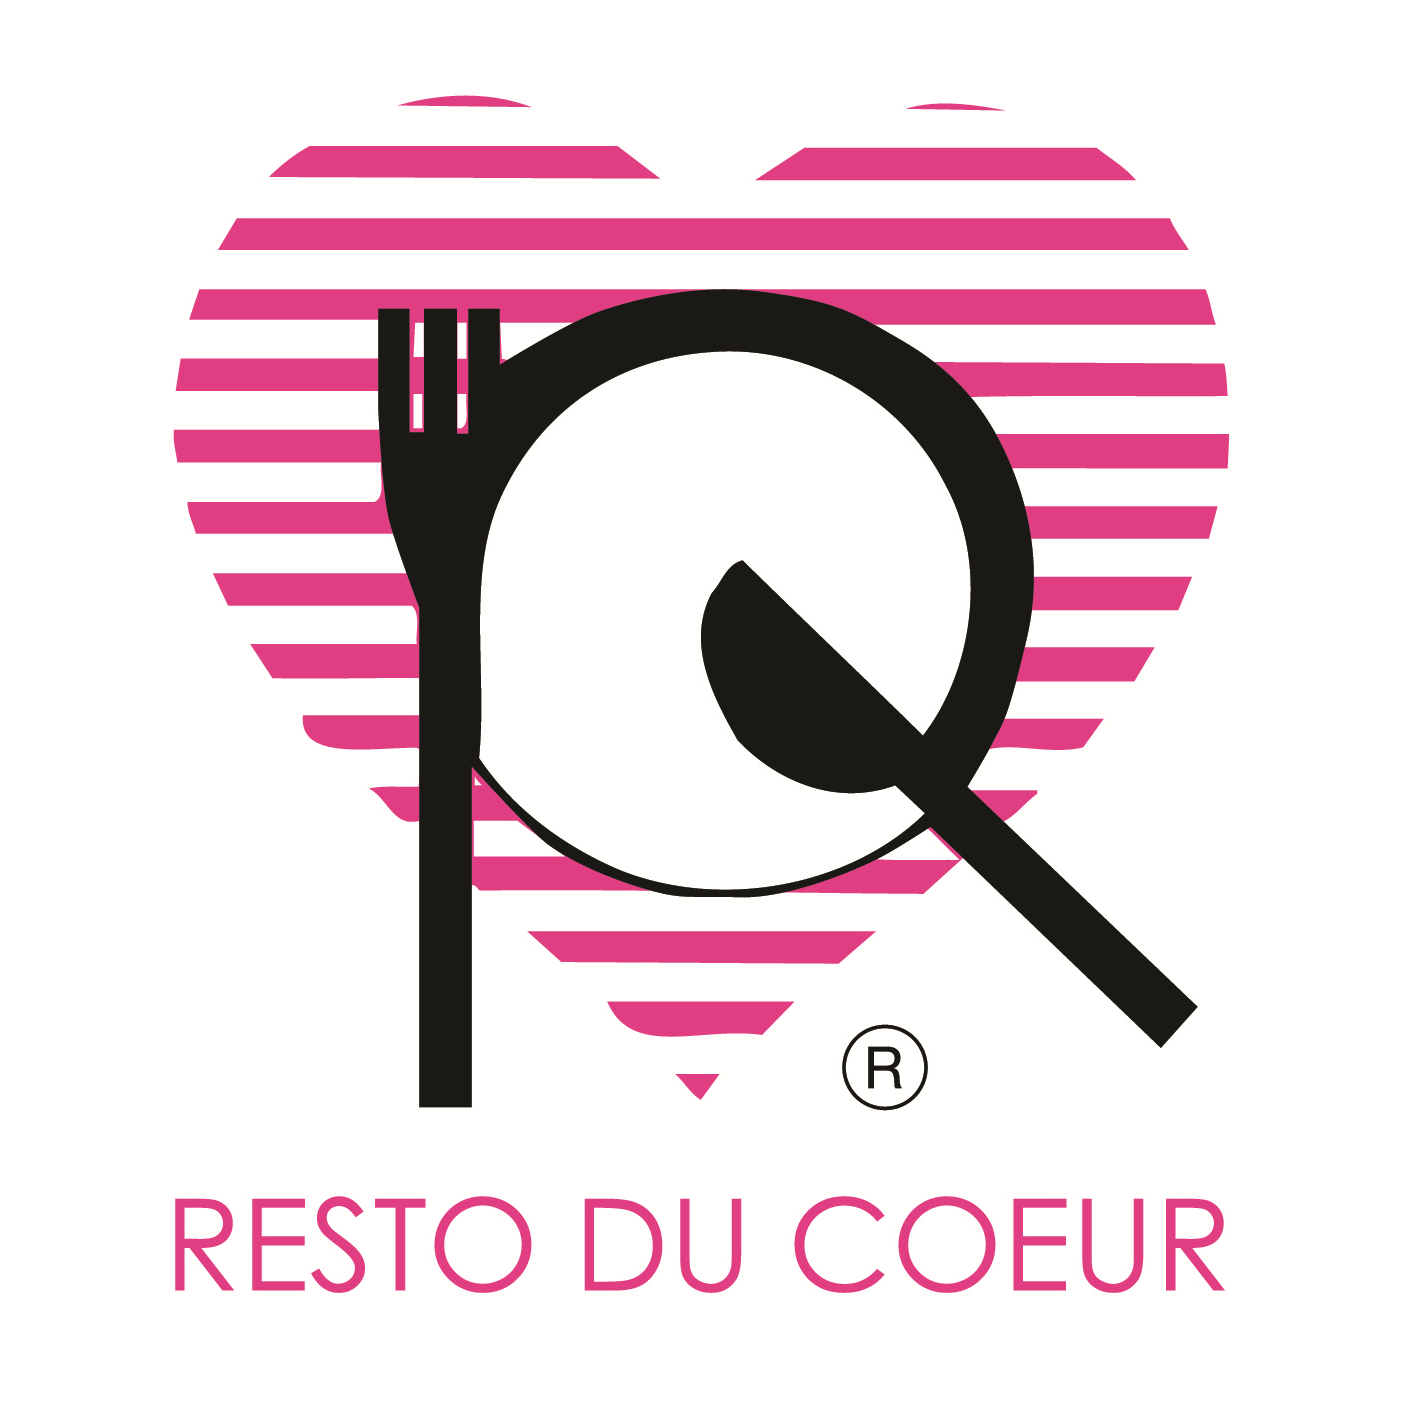 federation des restos du coeur de belgique federatie der belgische resto du coeur. Black Bedroom Furniture Sets. Home Design Ideas